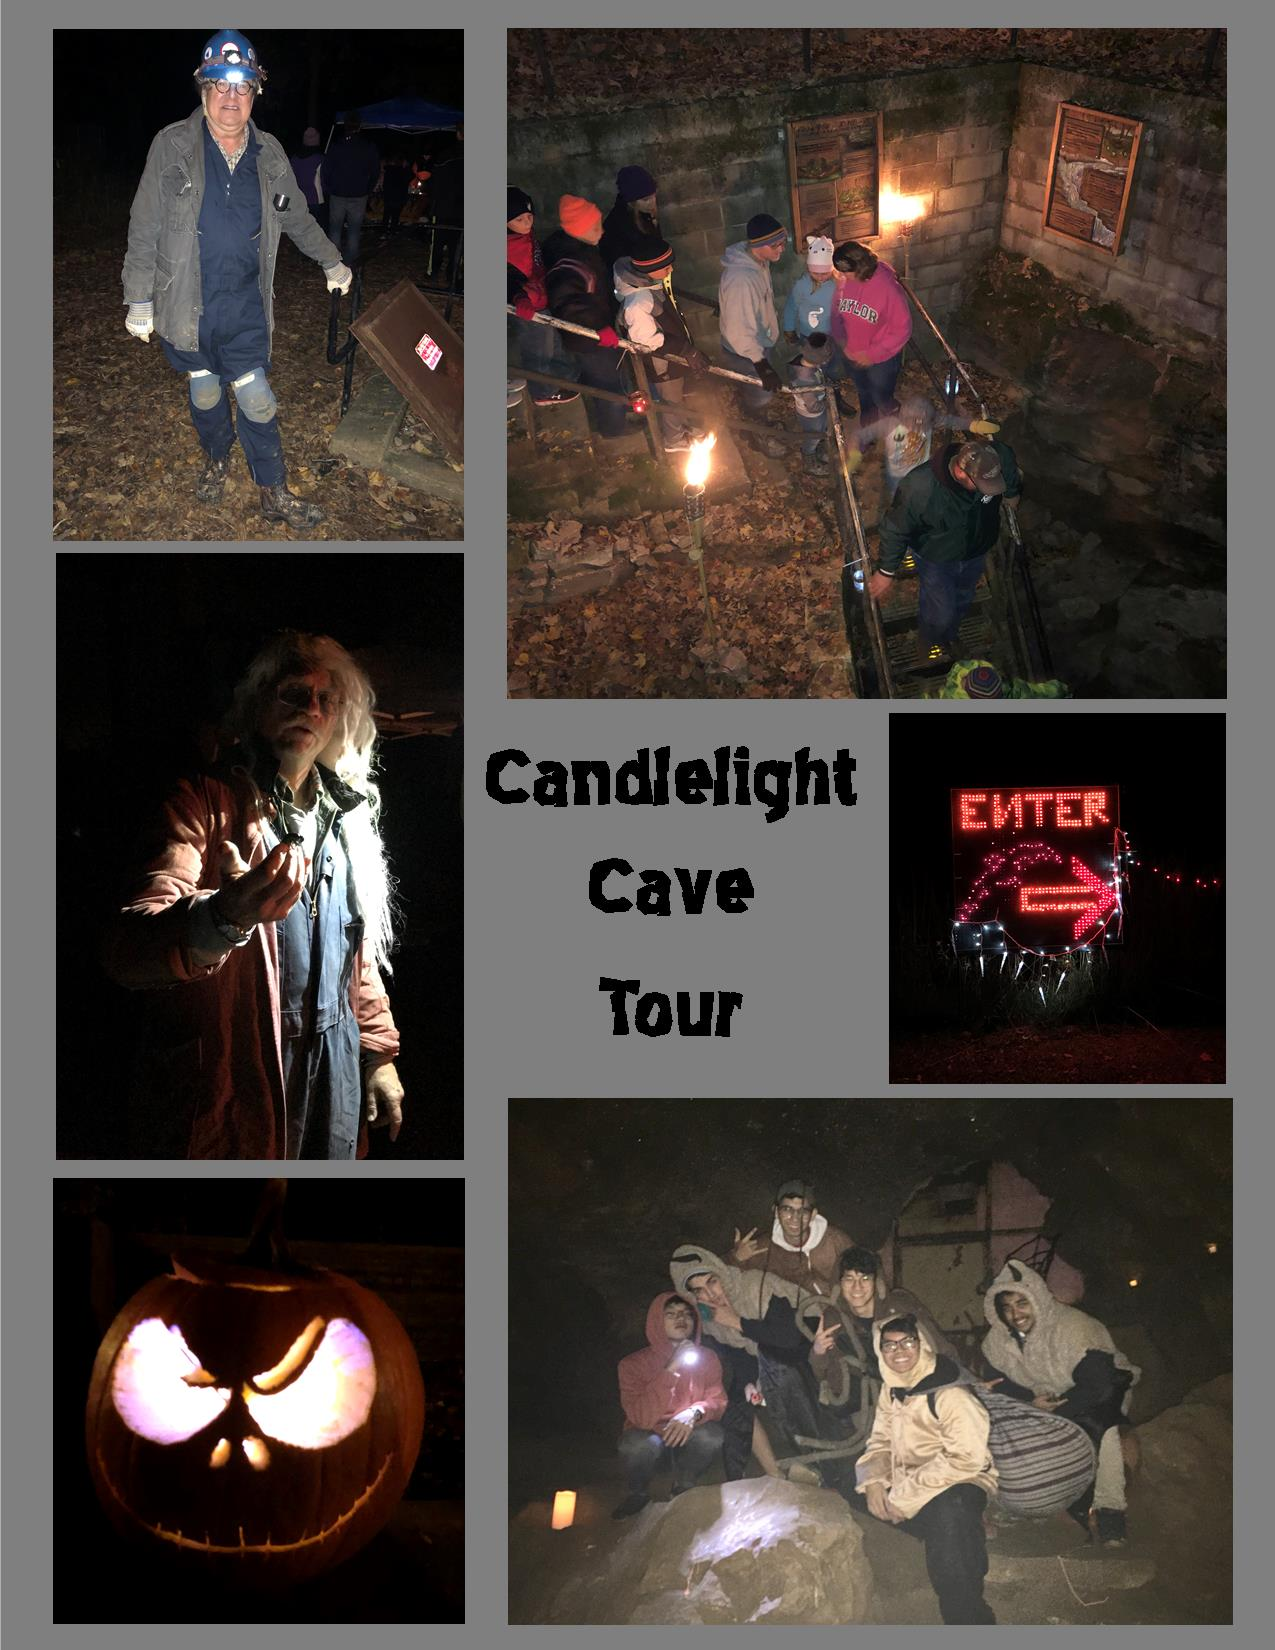 A poster showing photos from the Candlelight cave tour. Some are pictures of characters in costume,